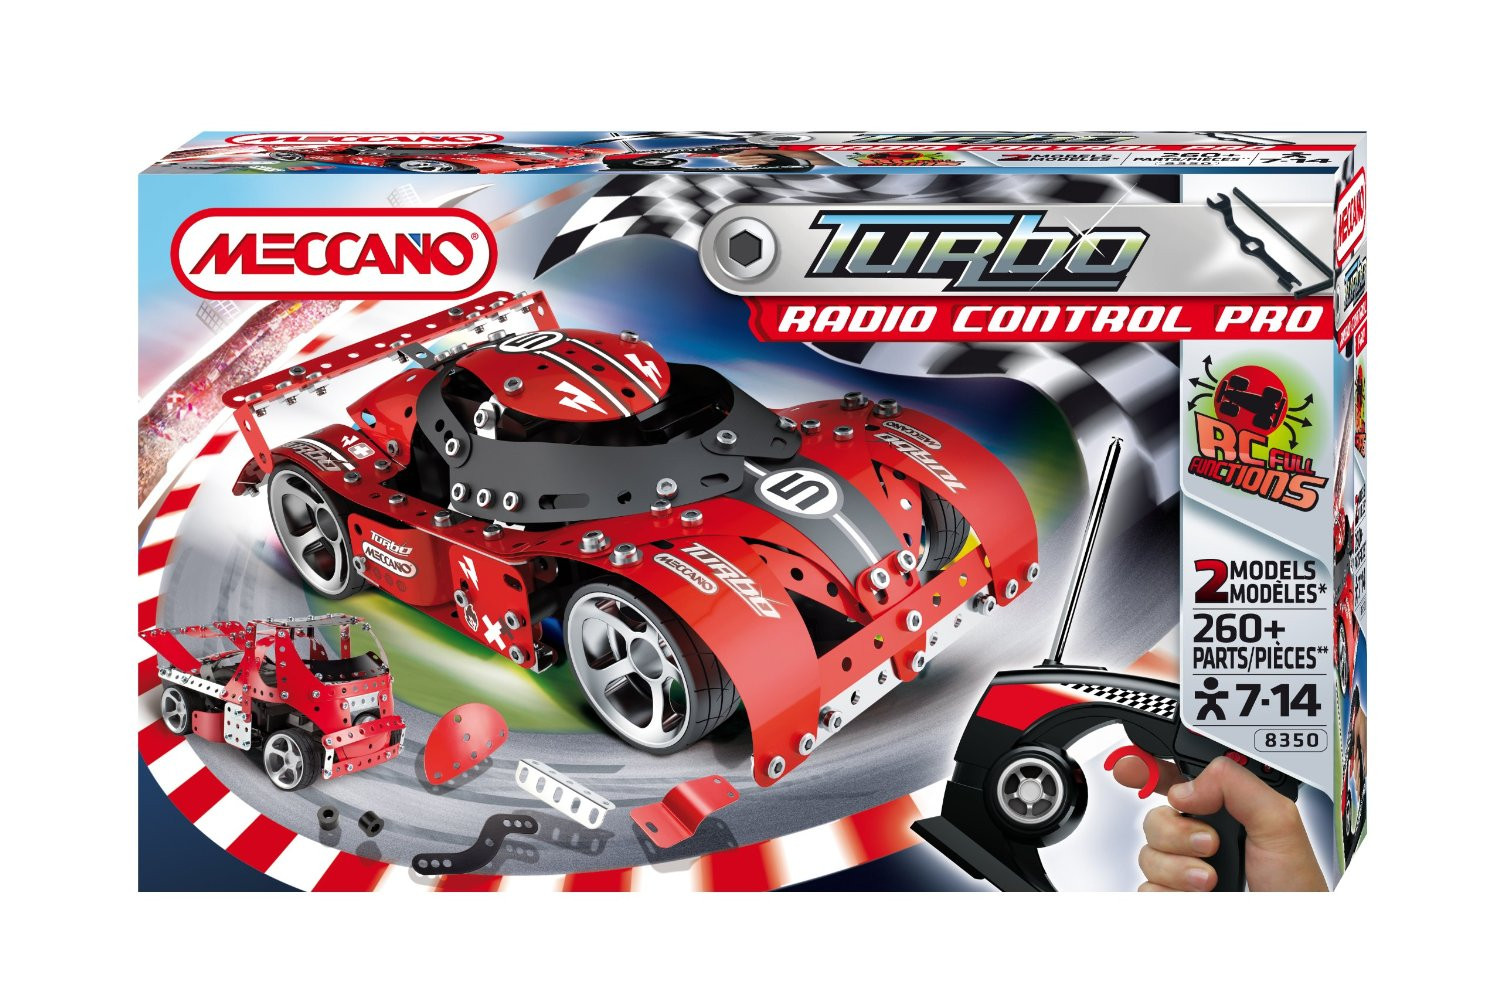 Meccano Turbo RC Pro Car